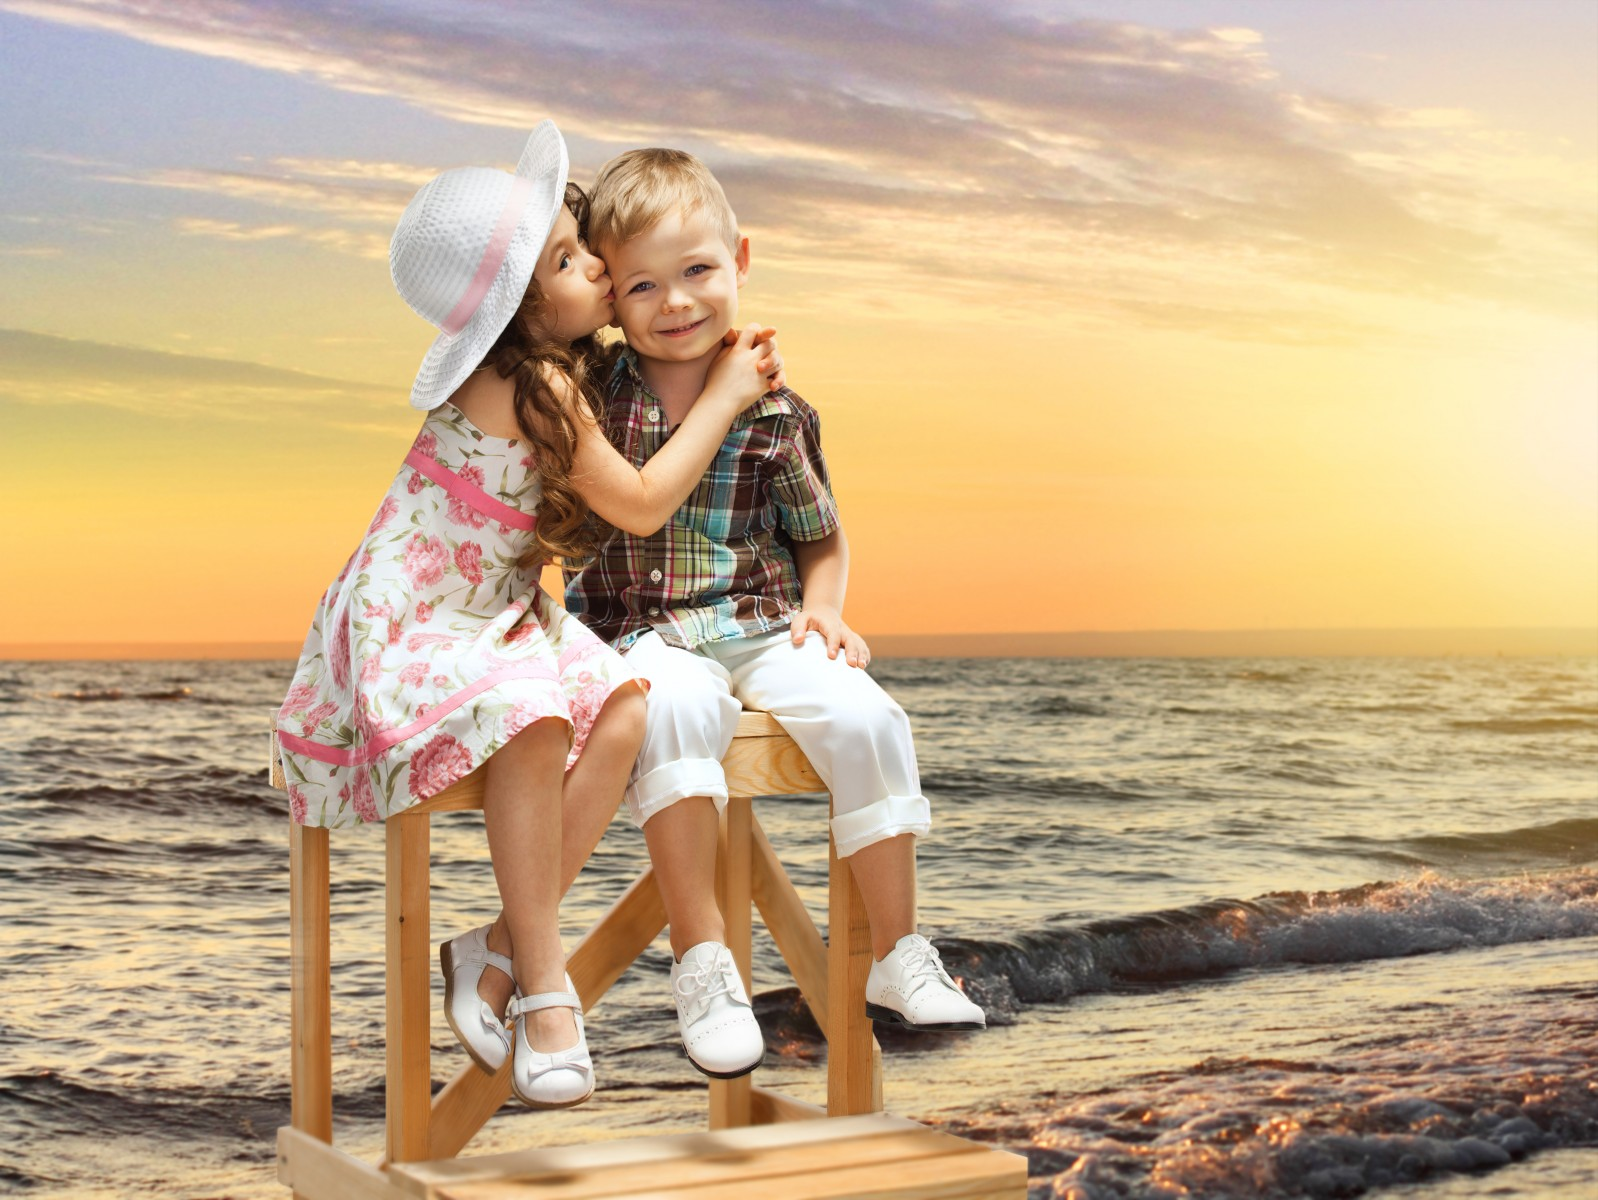 Wallpaper hd girl and boy impremedia friendship download hd wallpapers and free images thecheapjerseys Images